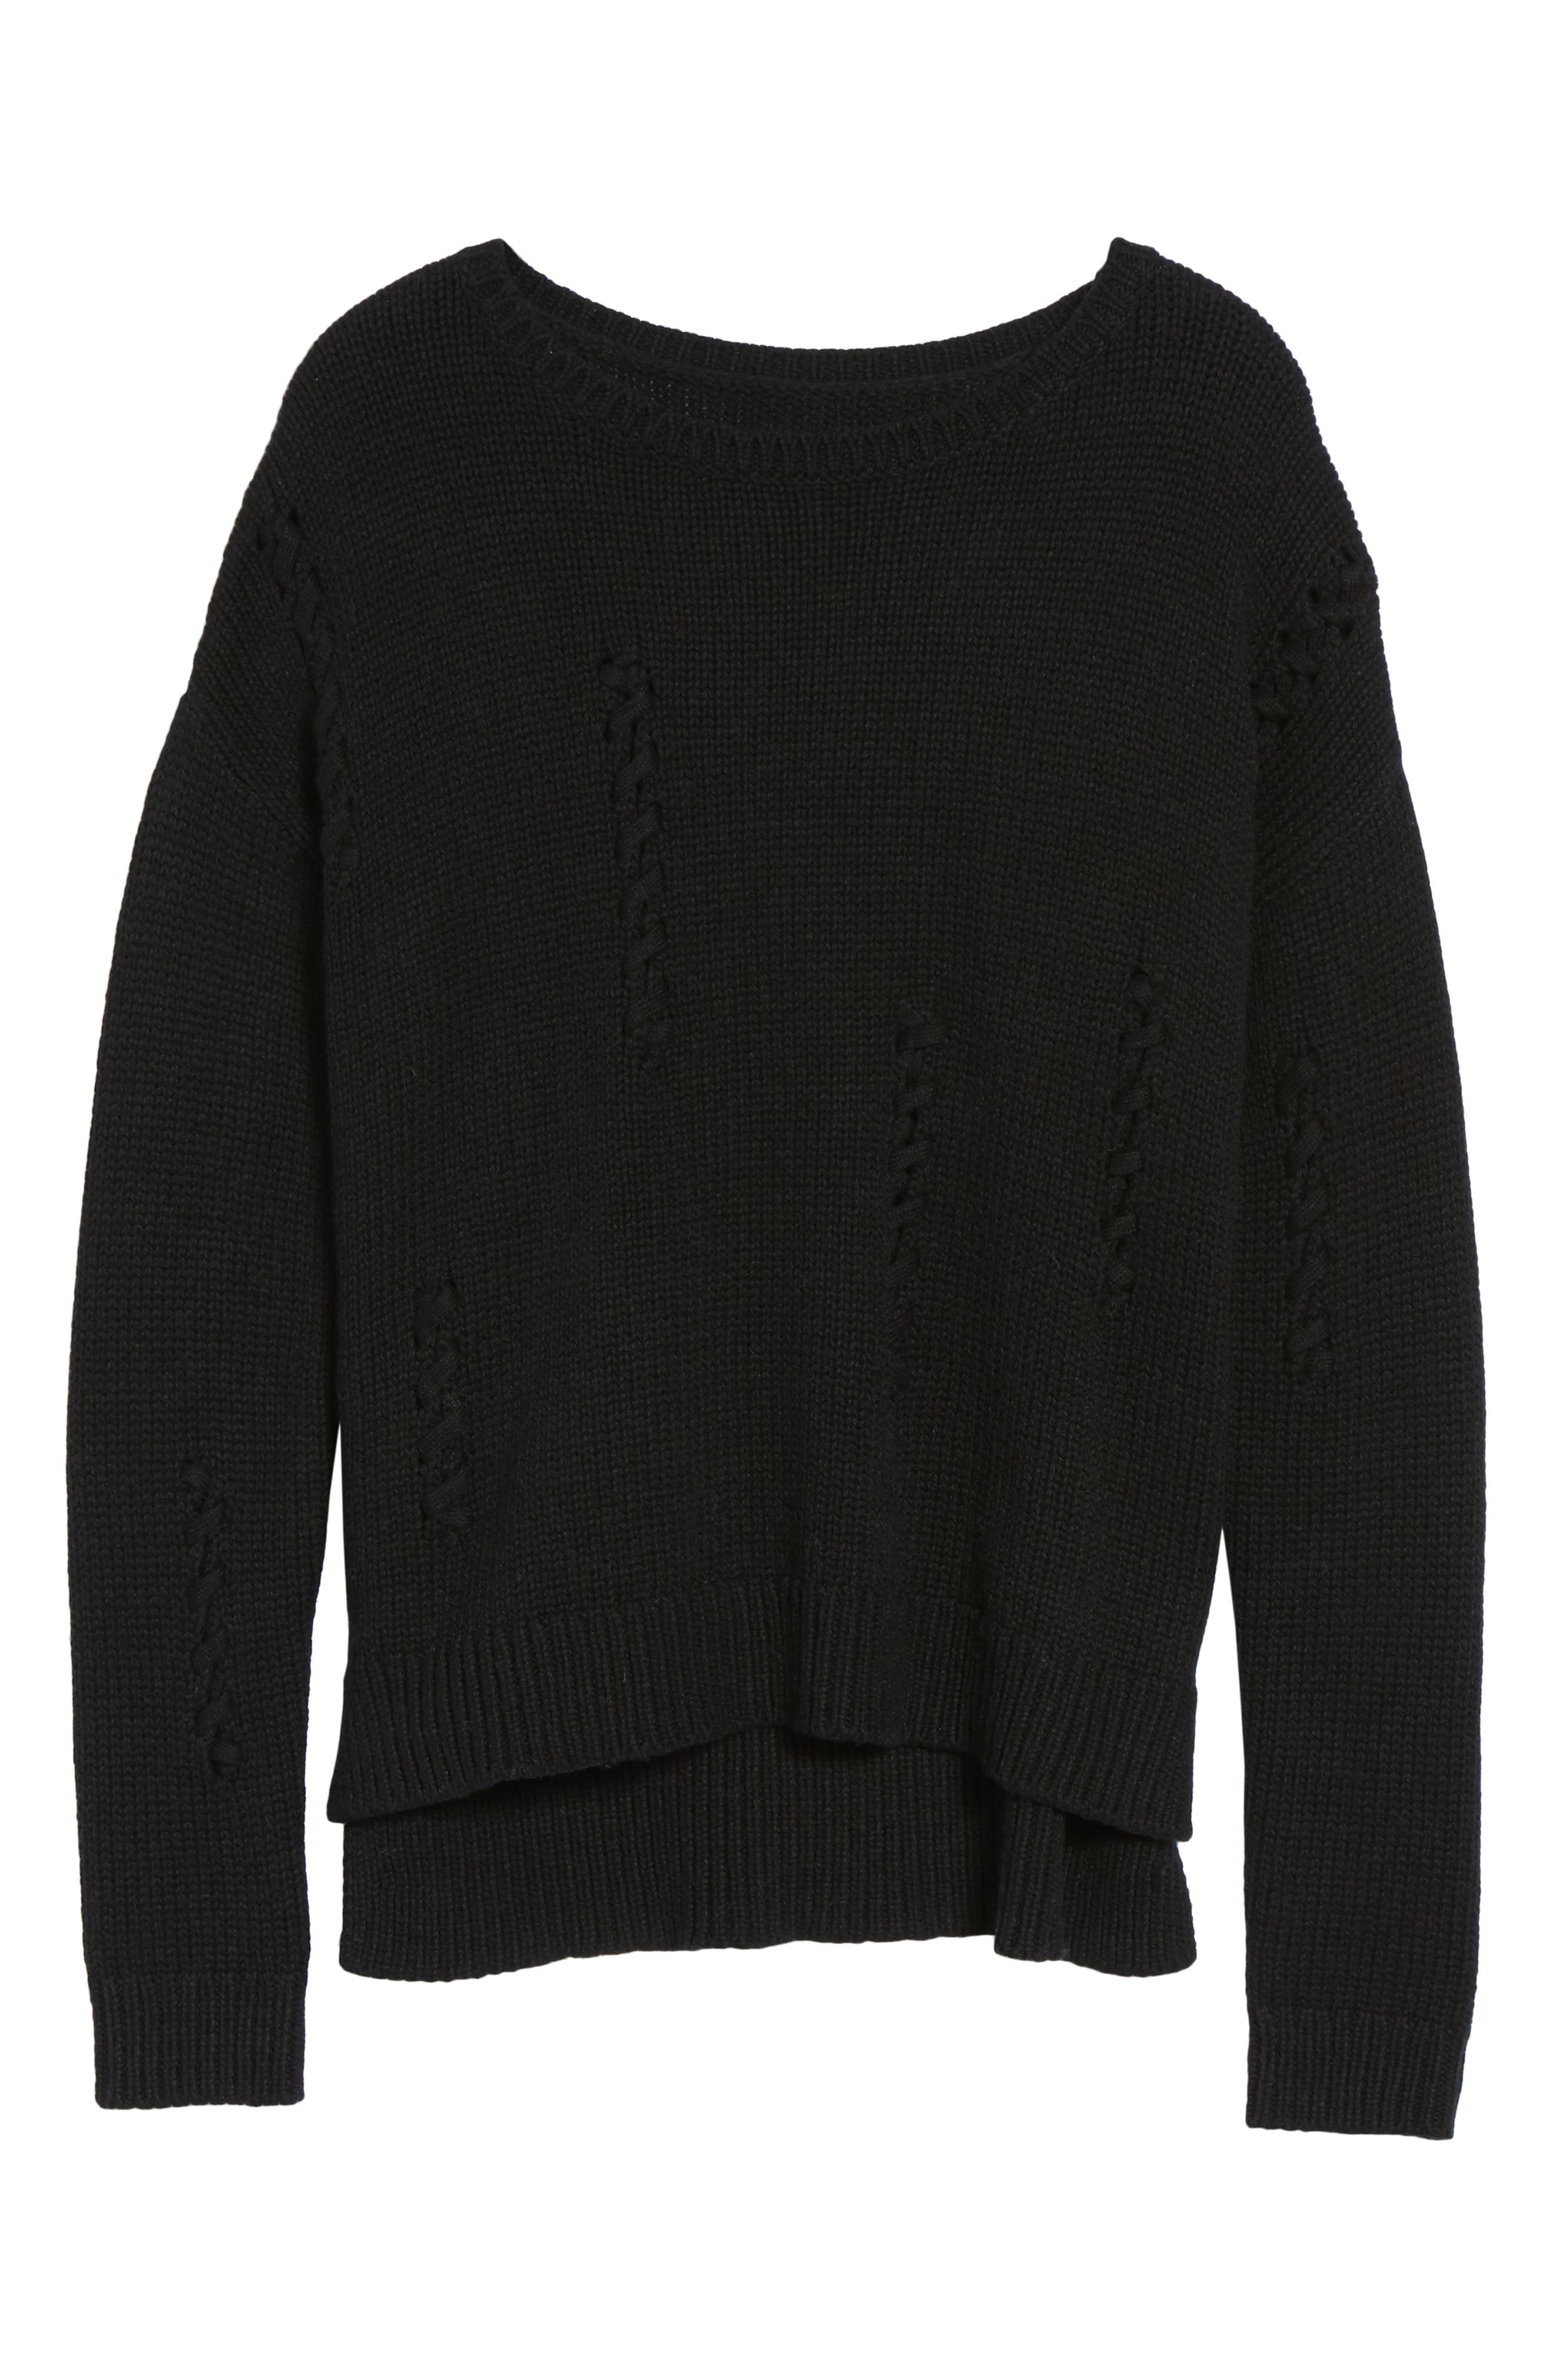 Whipstitch Detail Sweater,                             Alternate thumbnail 6, color,                             Black